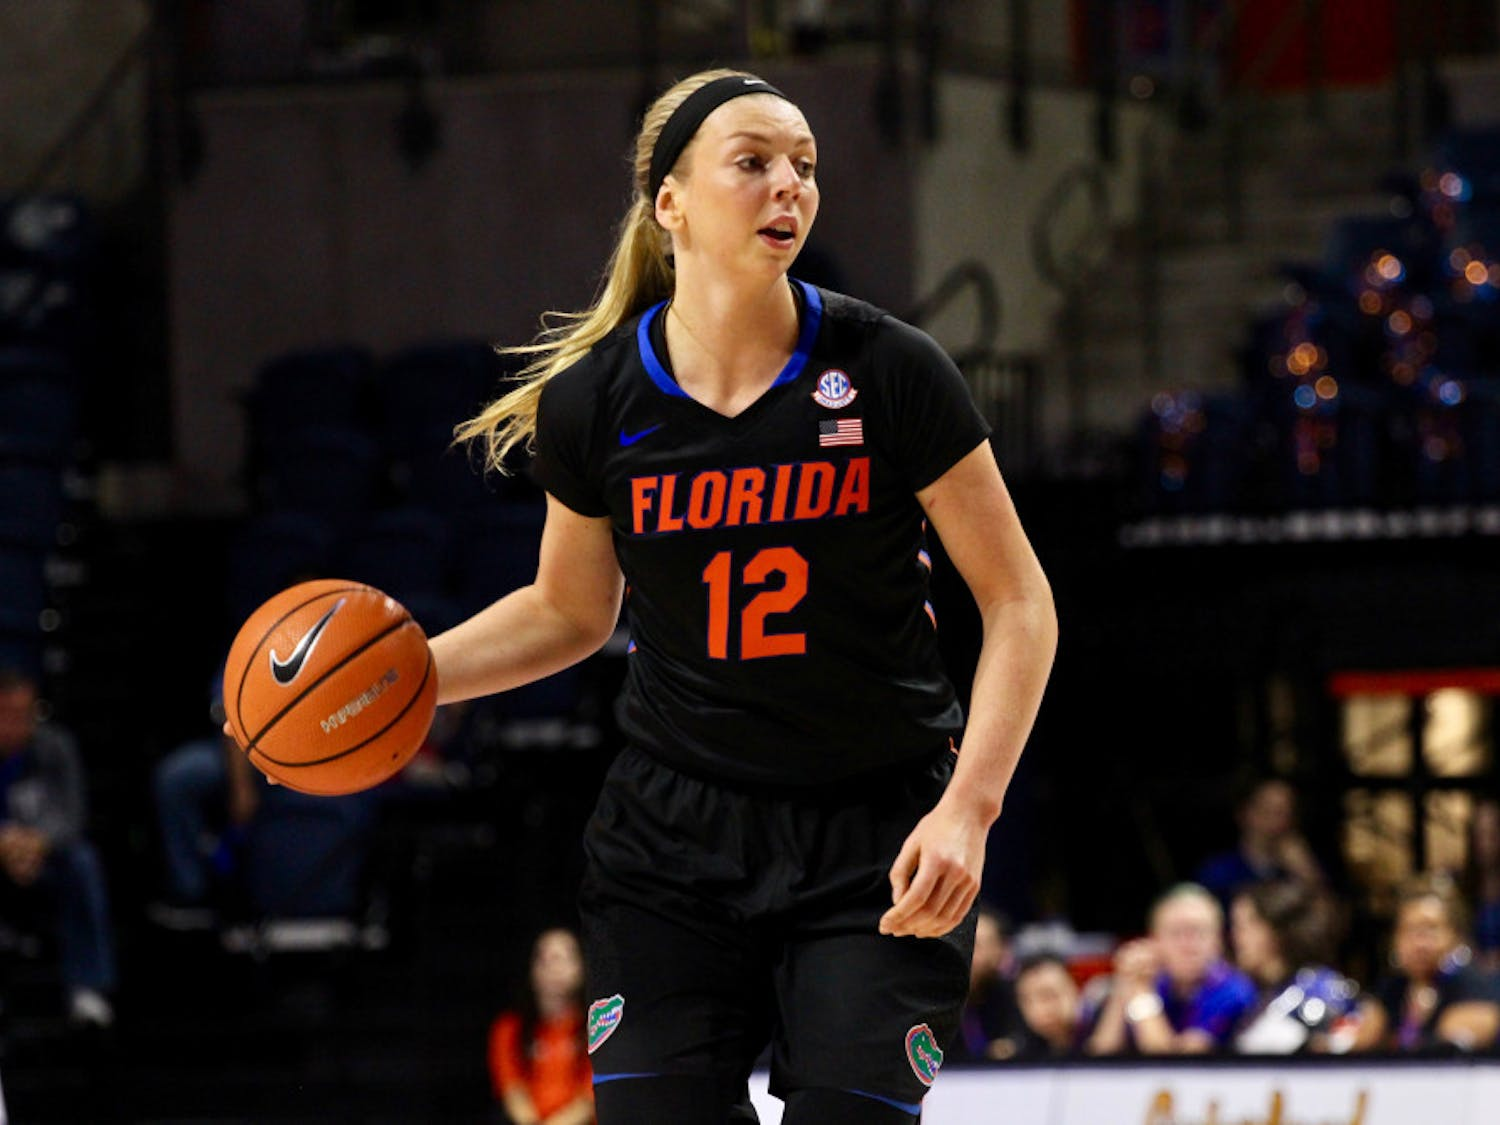 Graduate transfer Paulina Hersler is posting career highs in points per game(12.2), rebounds per game(6.8) and three-point percentage (37 percent) during her time as a Gator.